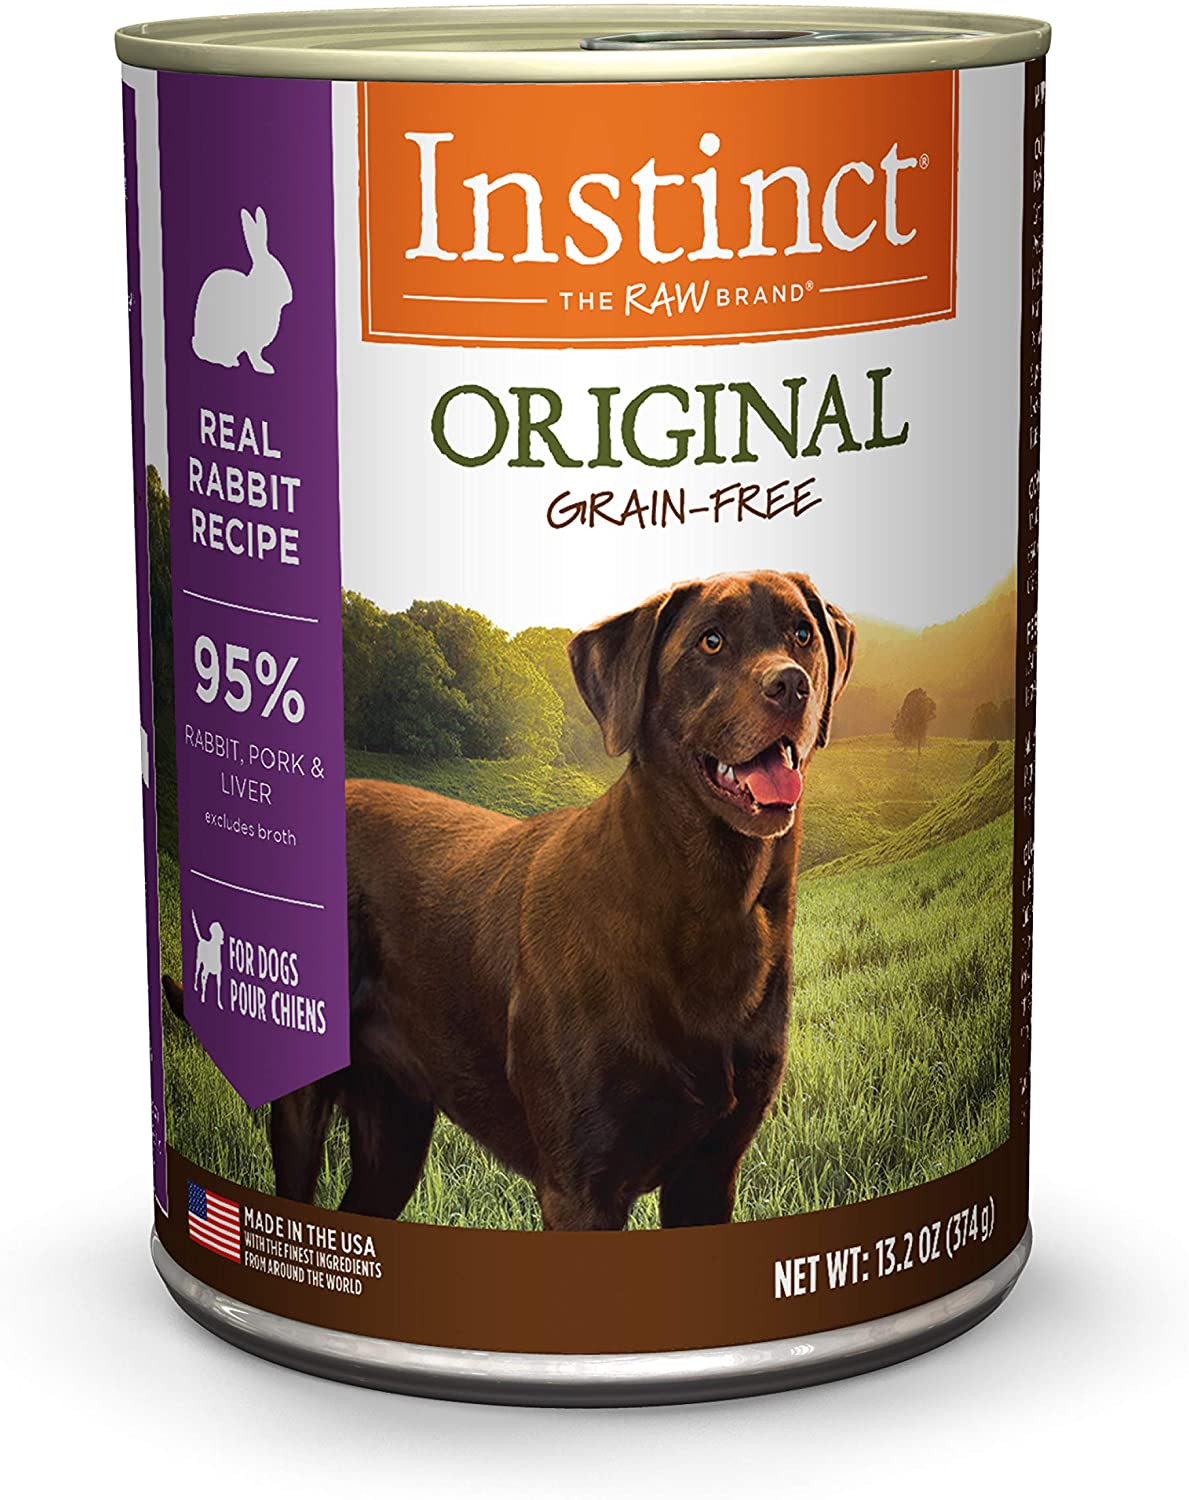 Instinct Original Grain Free Real Rabbit Recipe Natural Wet Canned Dog Food by Nature's Variety, 13.2 oz. Cans (Case of 6)